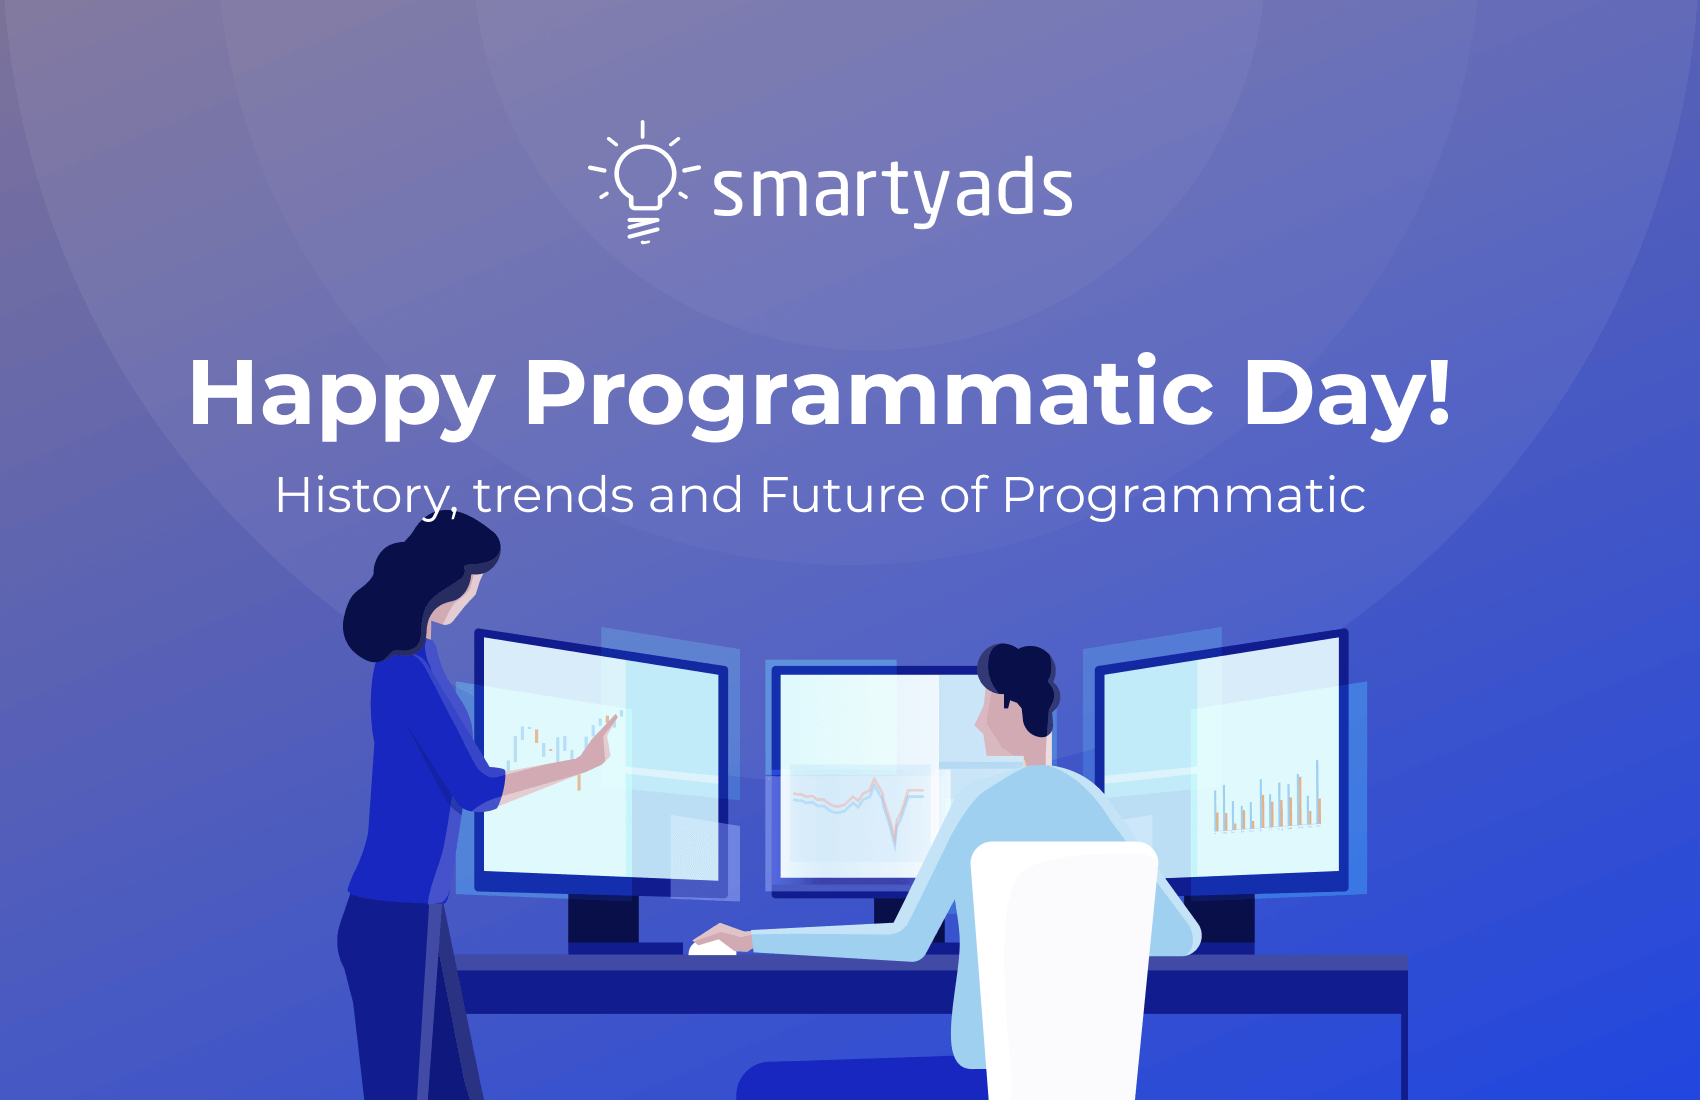 National Programmatic Advertising Day: History, Trends, and Future